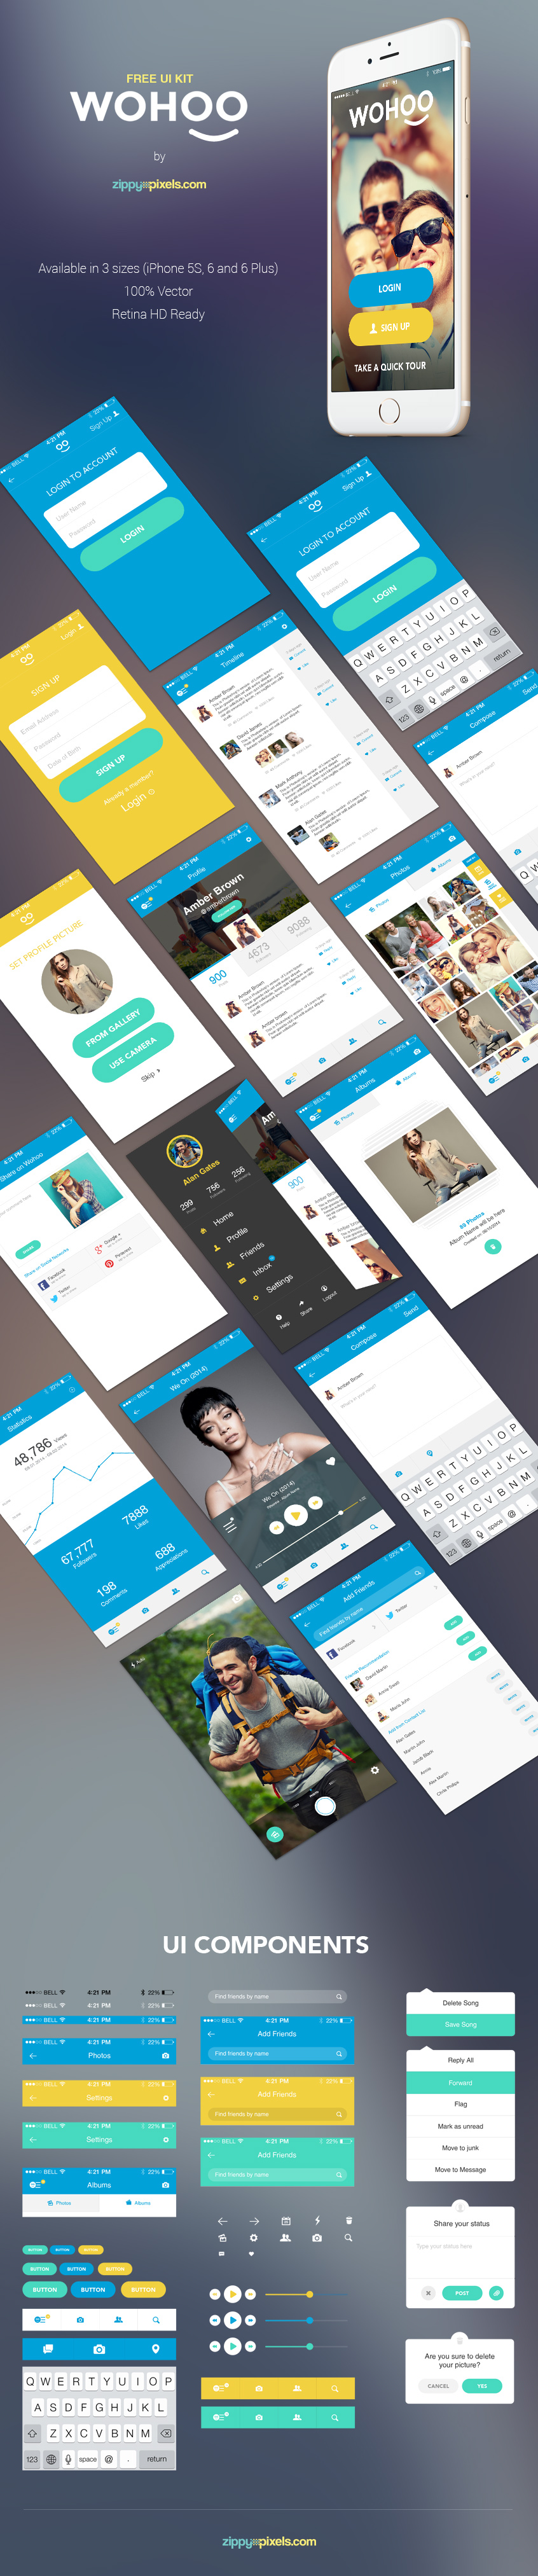 Free WOHOO UI Kit For Mobile 2015